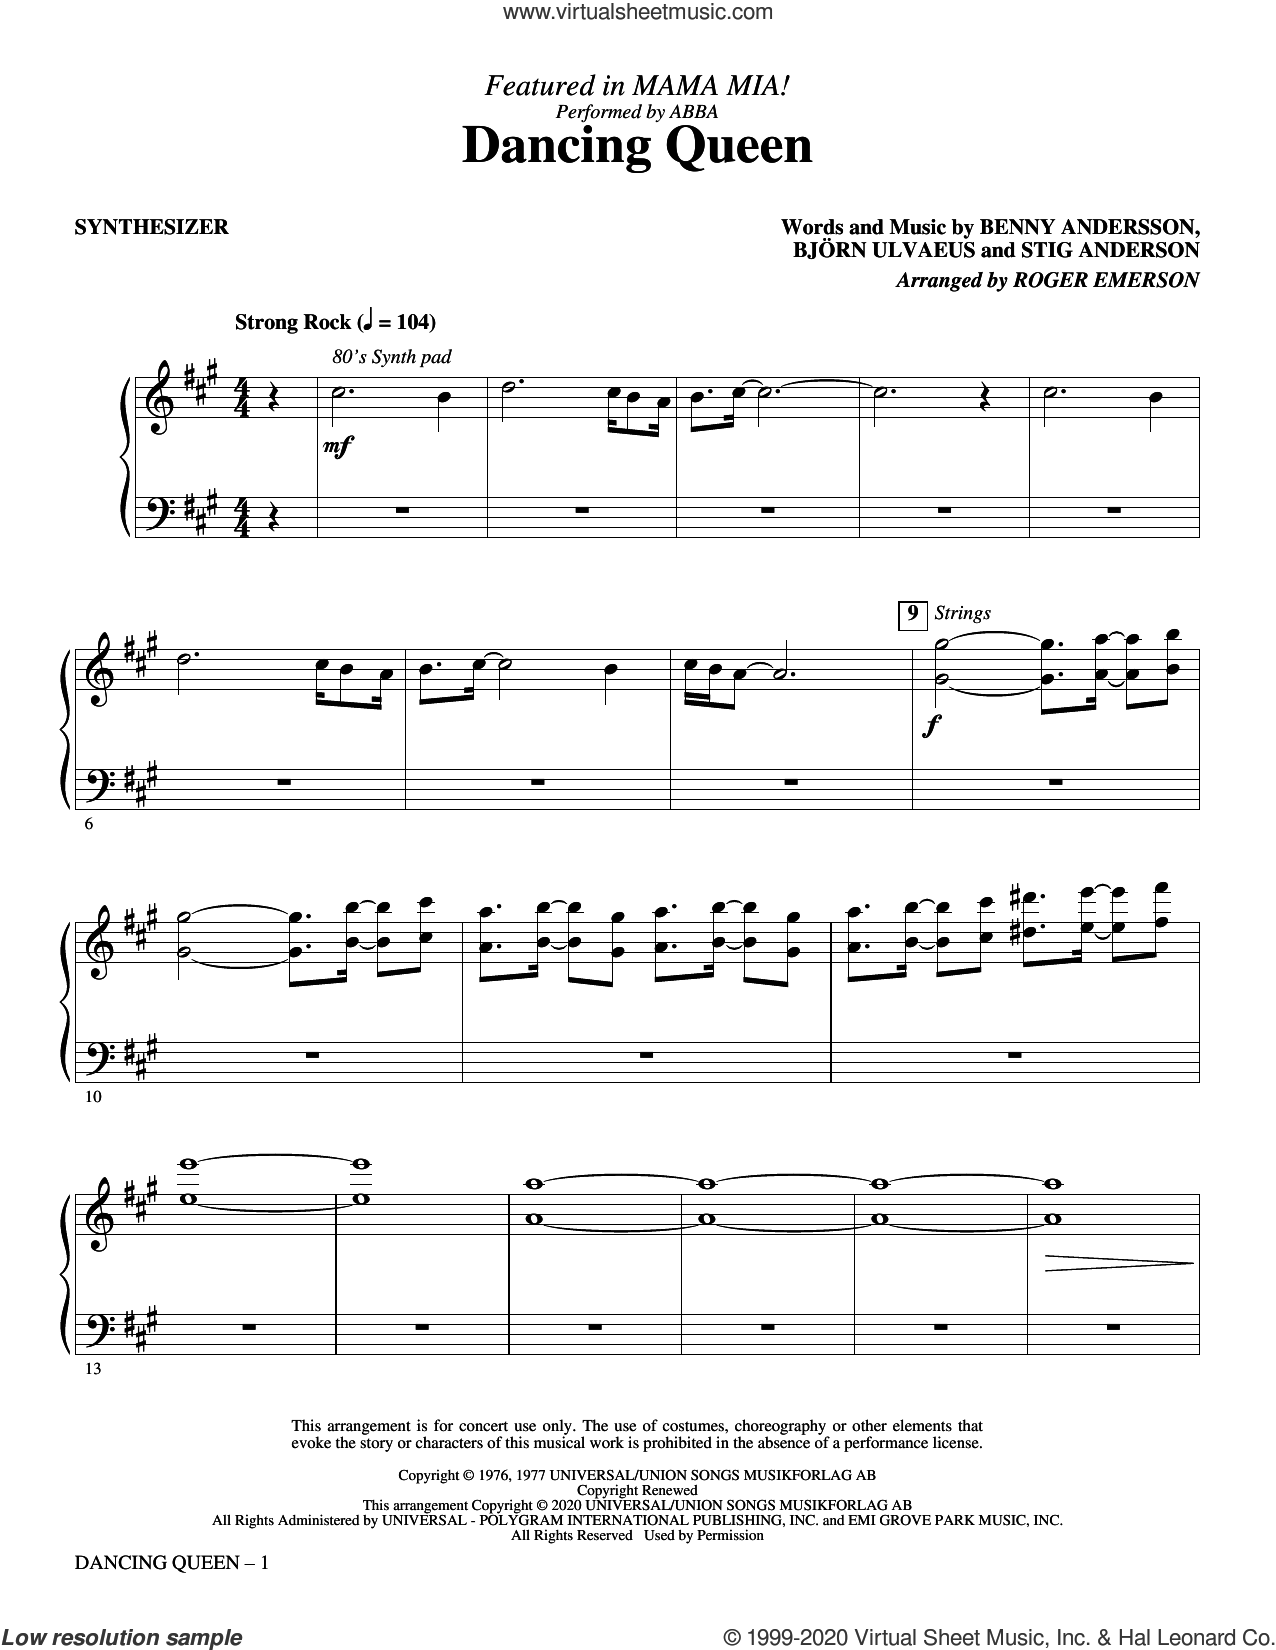 Dancing Queen (from Mamma Mia!) (arr. Roger Emerson) (complete set of parts) sheet music for orchestra/band by Roger Emerson, ABBA, Benny Andersson, Bjorn Ulvaeus and Stig Anderson, intermediate skill level